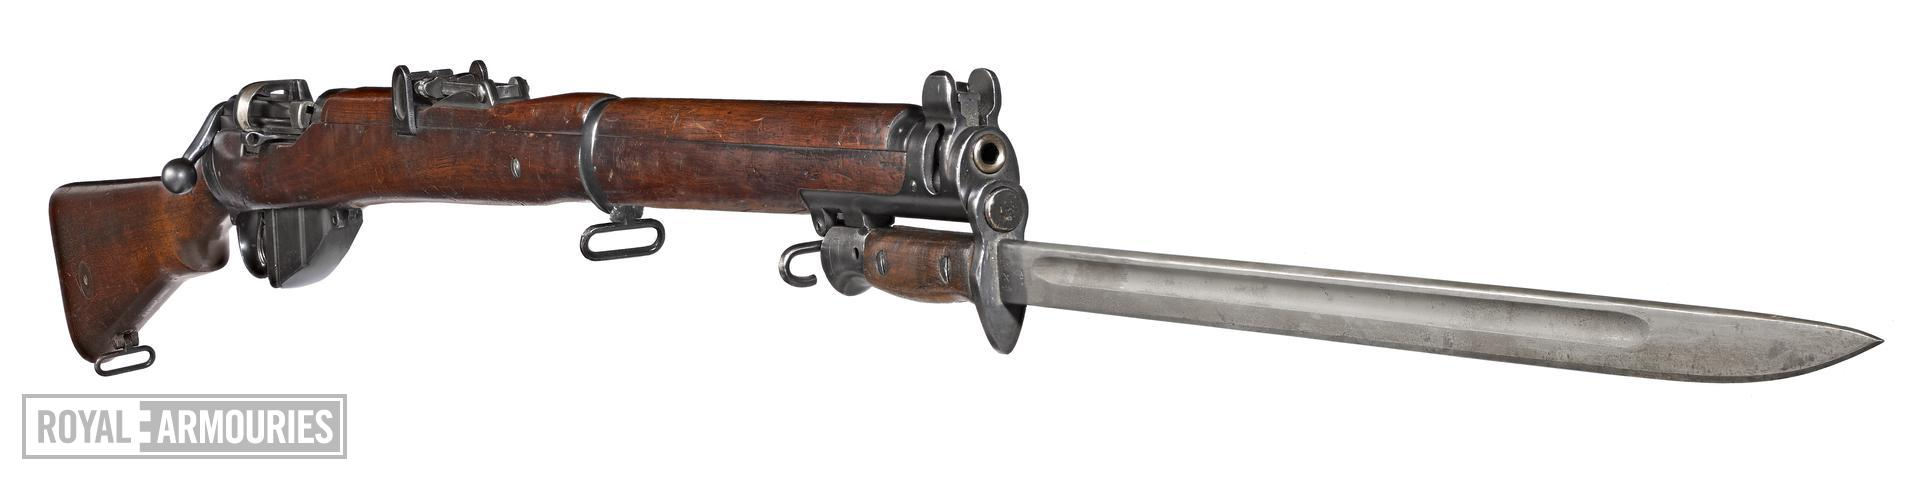 Short, Magazine Lee Enfield (SMLE) rifle and Pattern 1907 bayonet (1903).jpg